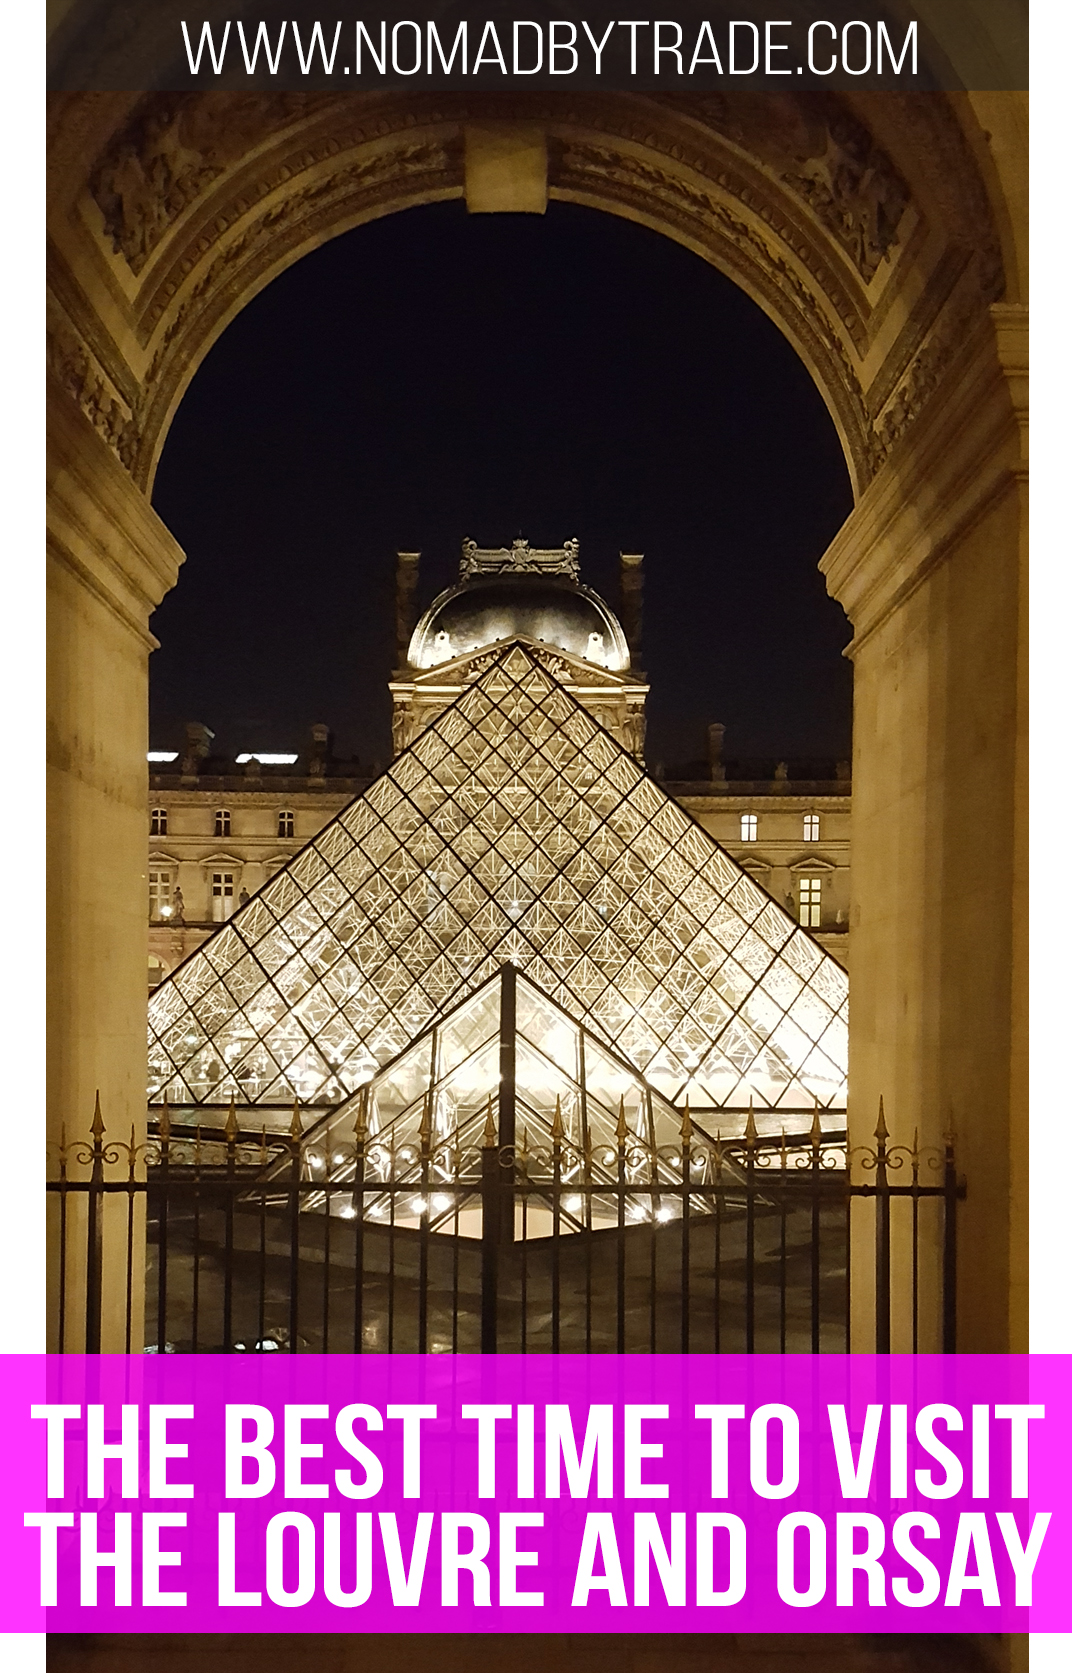 The best time to visit the Louvre and Musee d'Orsay in Paris, France isn't what you think.